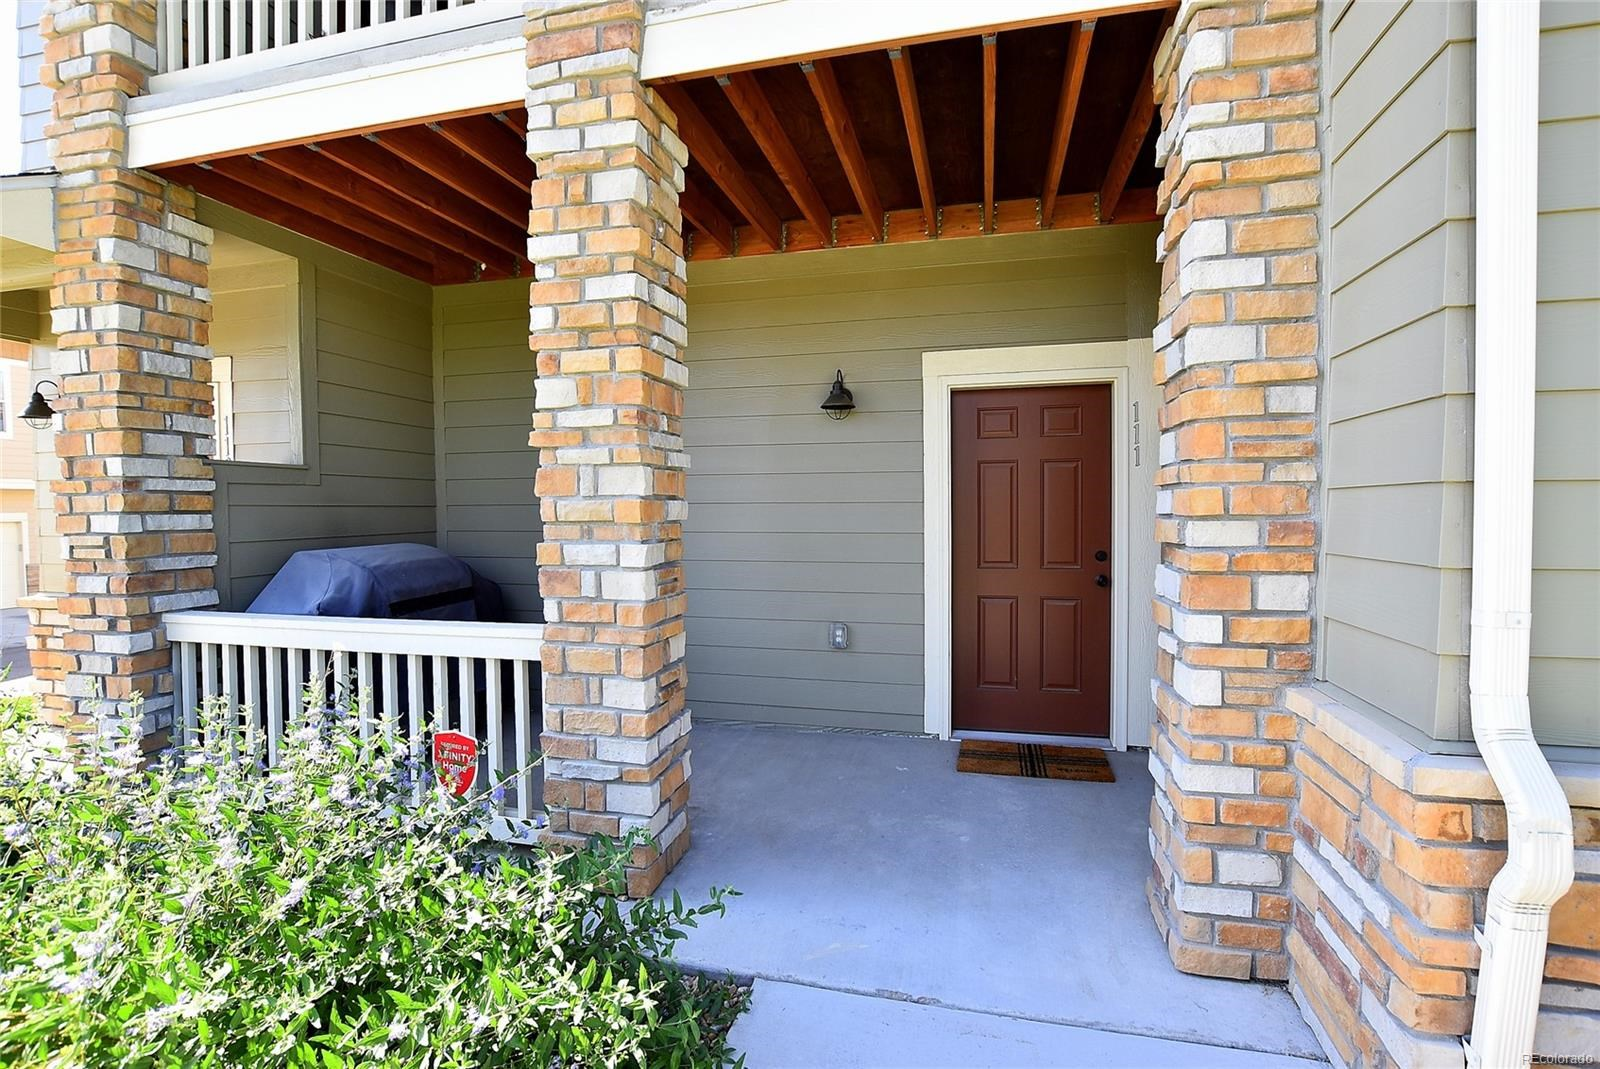 MLS# 5772080 - 3 - 6915 W 3rd Street #111, Greeley, CO 80634